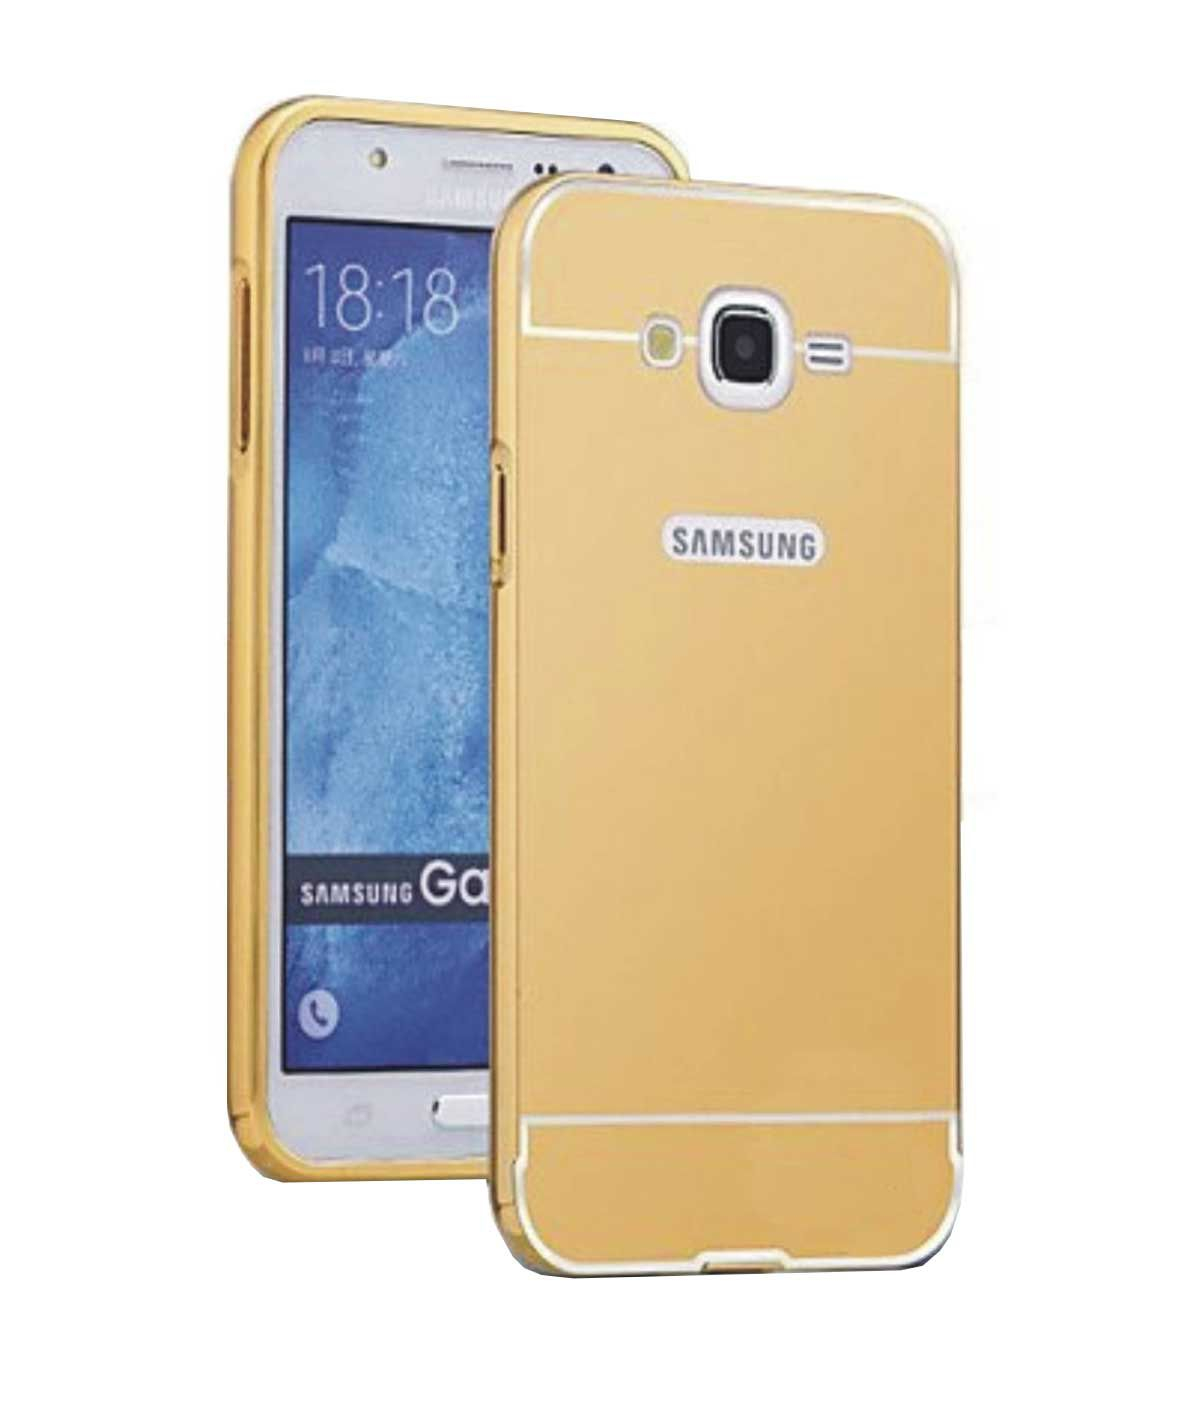 newest 5367e dc1e6 TBZ Metal Bumper Acrylic Mirror Back Cover Case for Samsung Galaxy J7 2016  -Golden